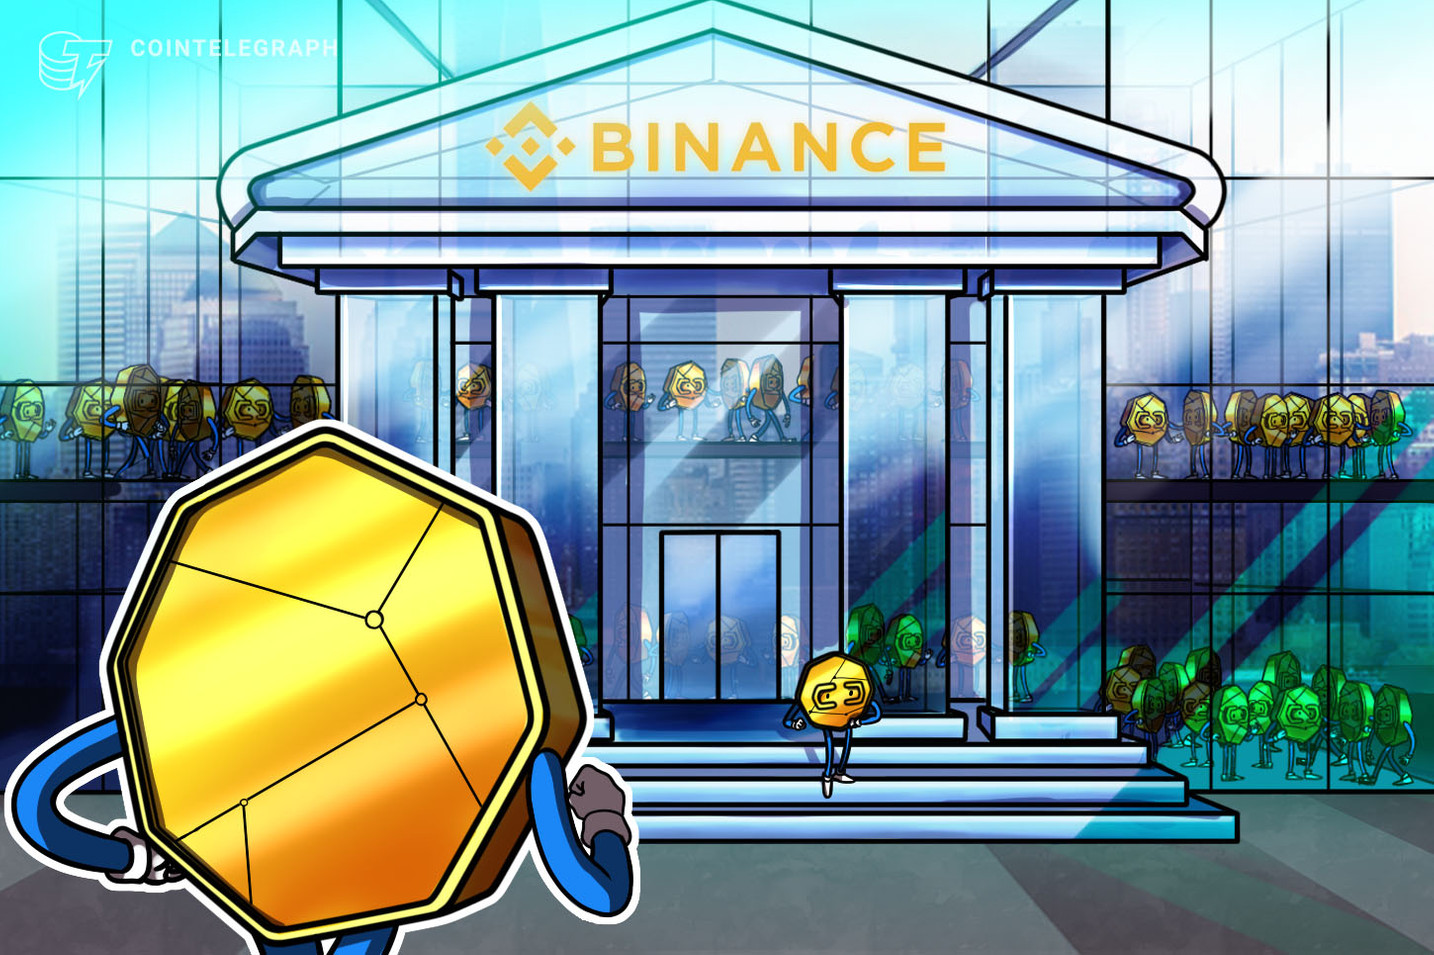 Binance Trading Volume Reaches All-Time High Amid Bitcoin's Price Surge